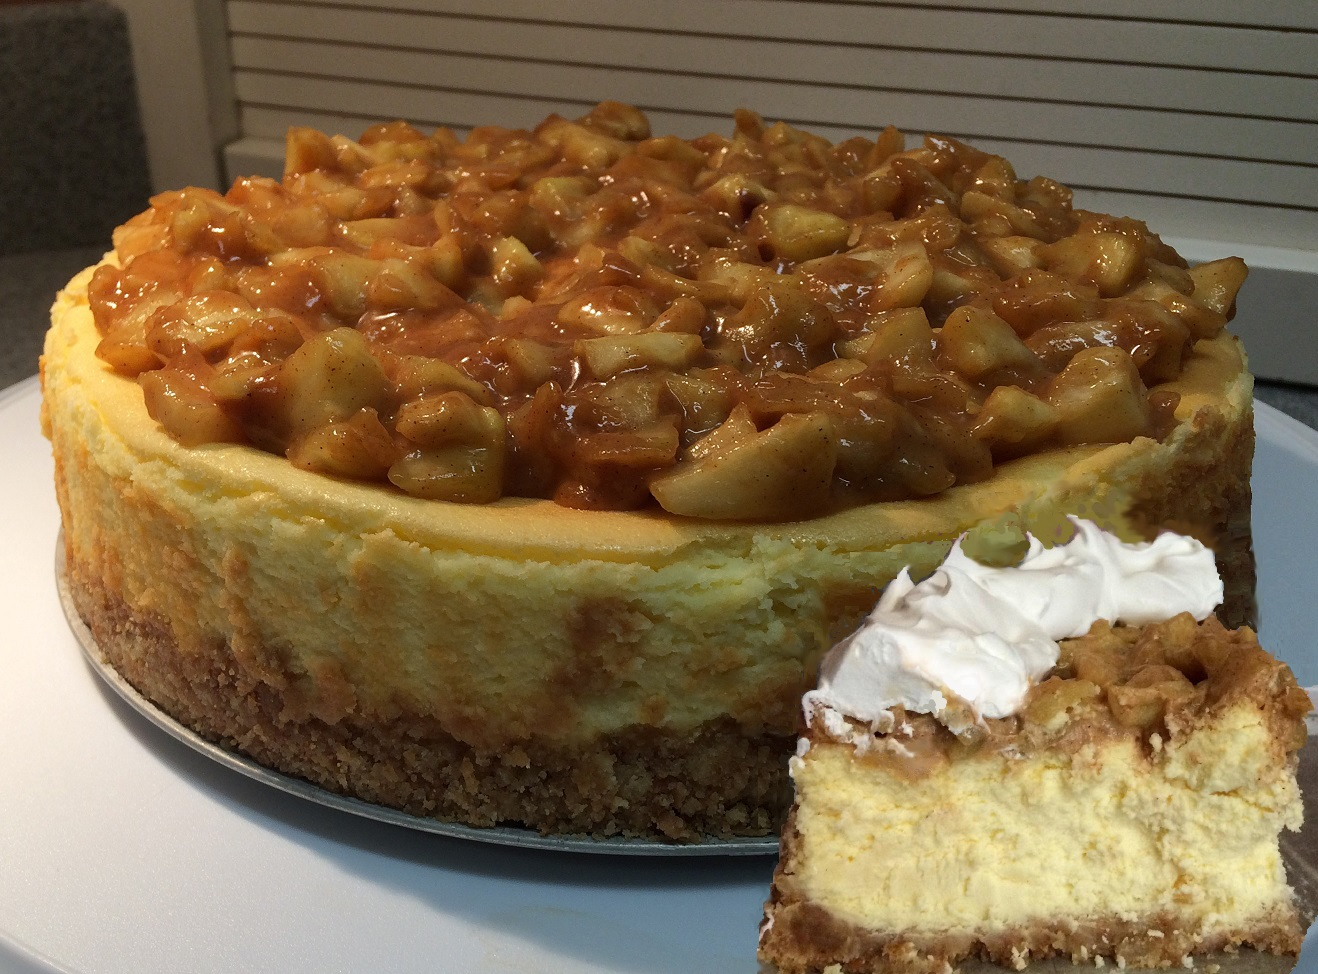 Apple Cheesecake with Caramel Sauce